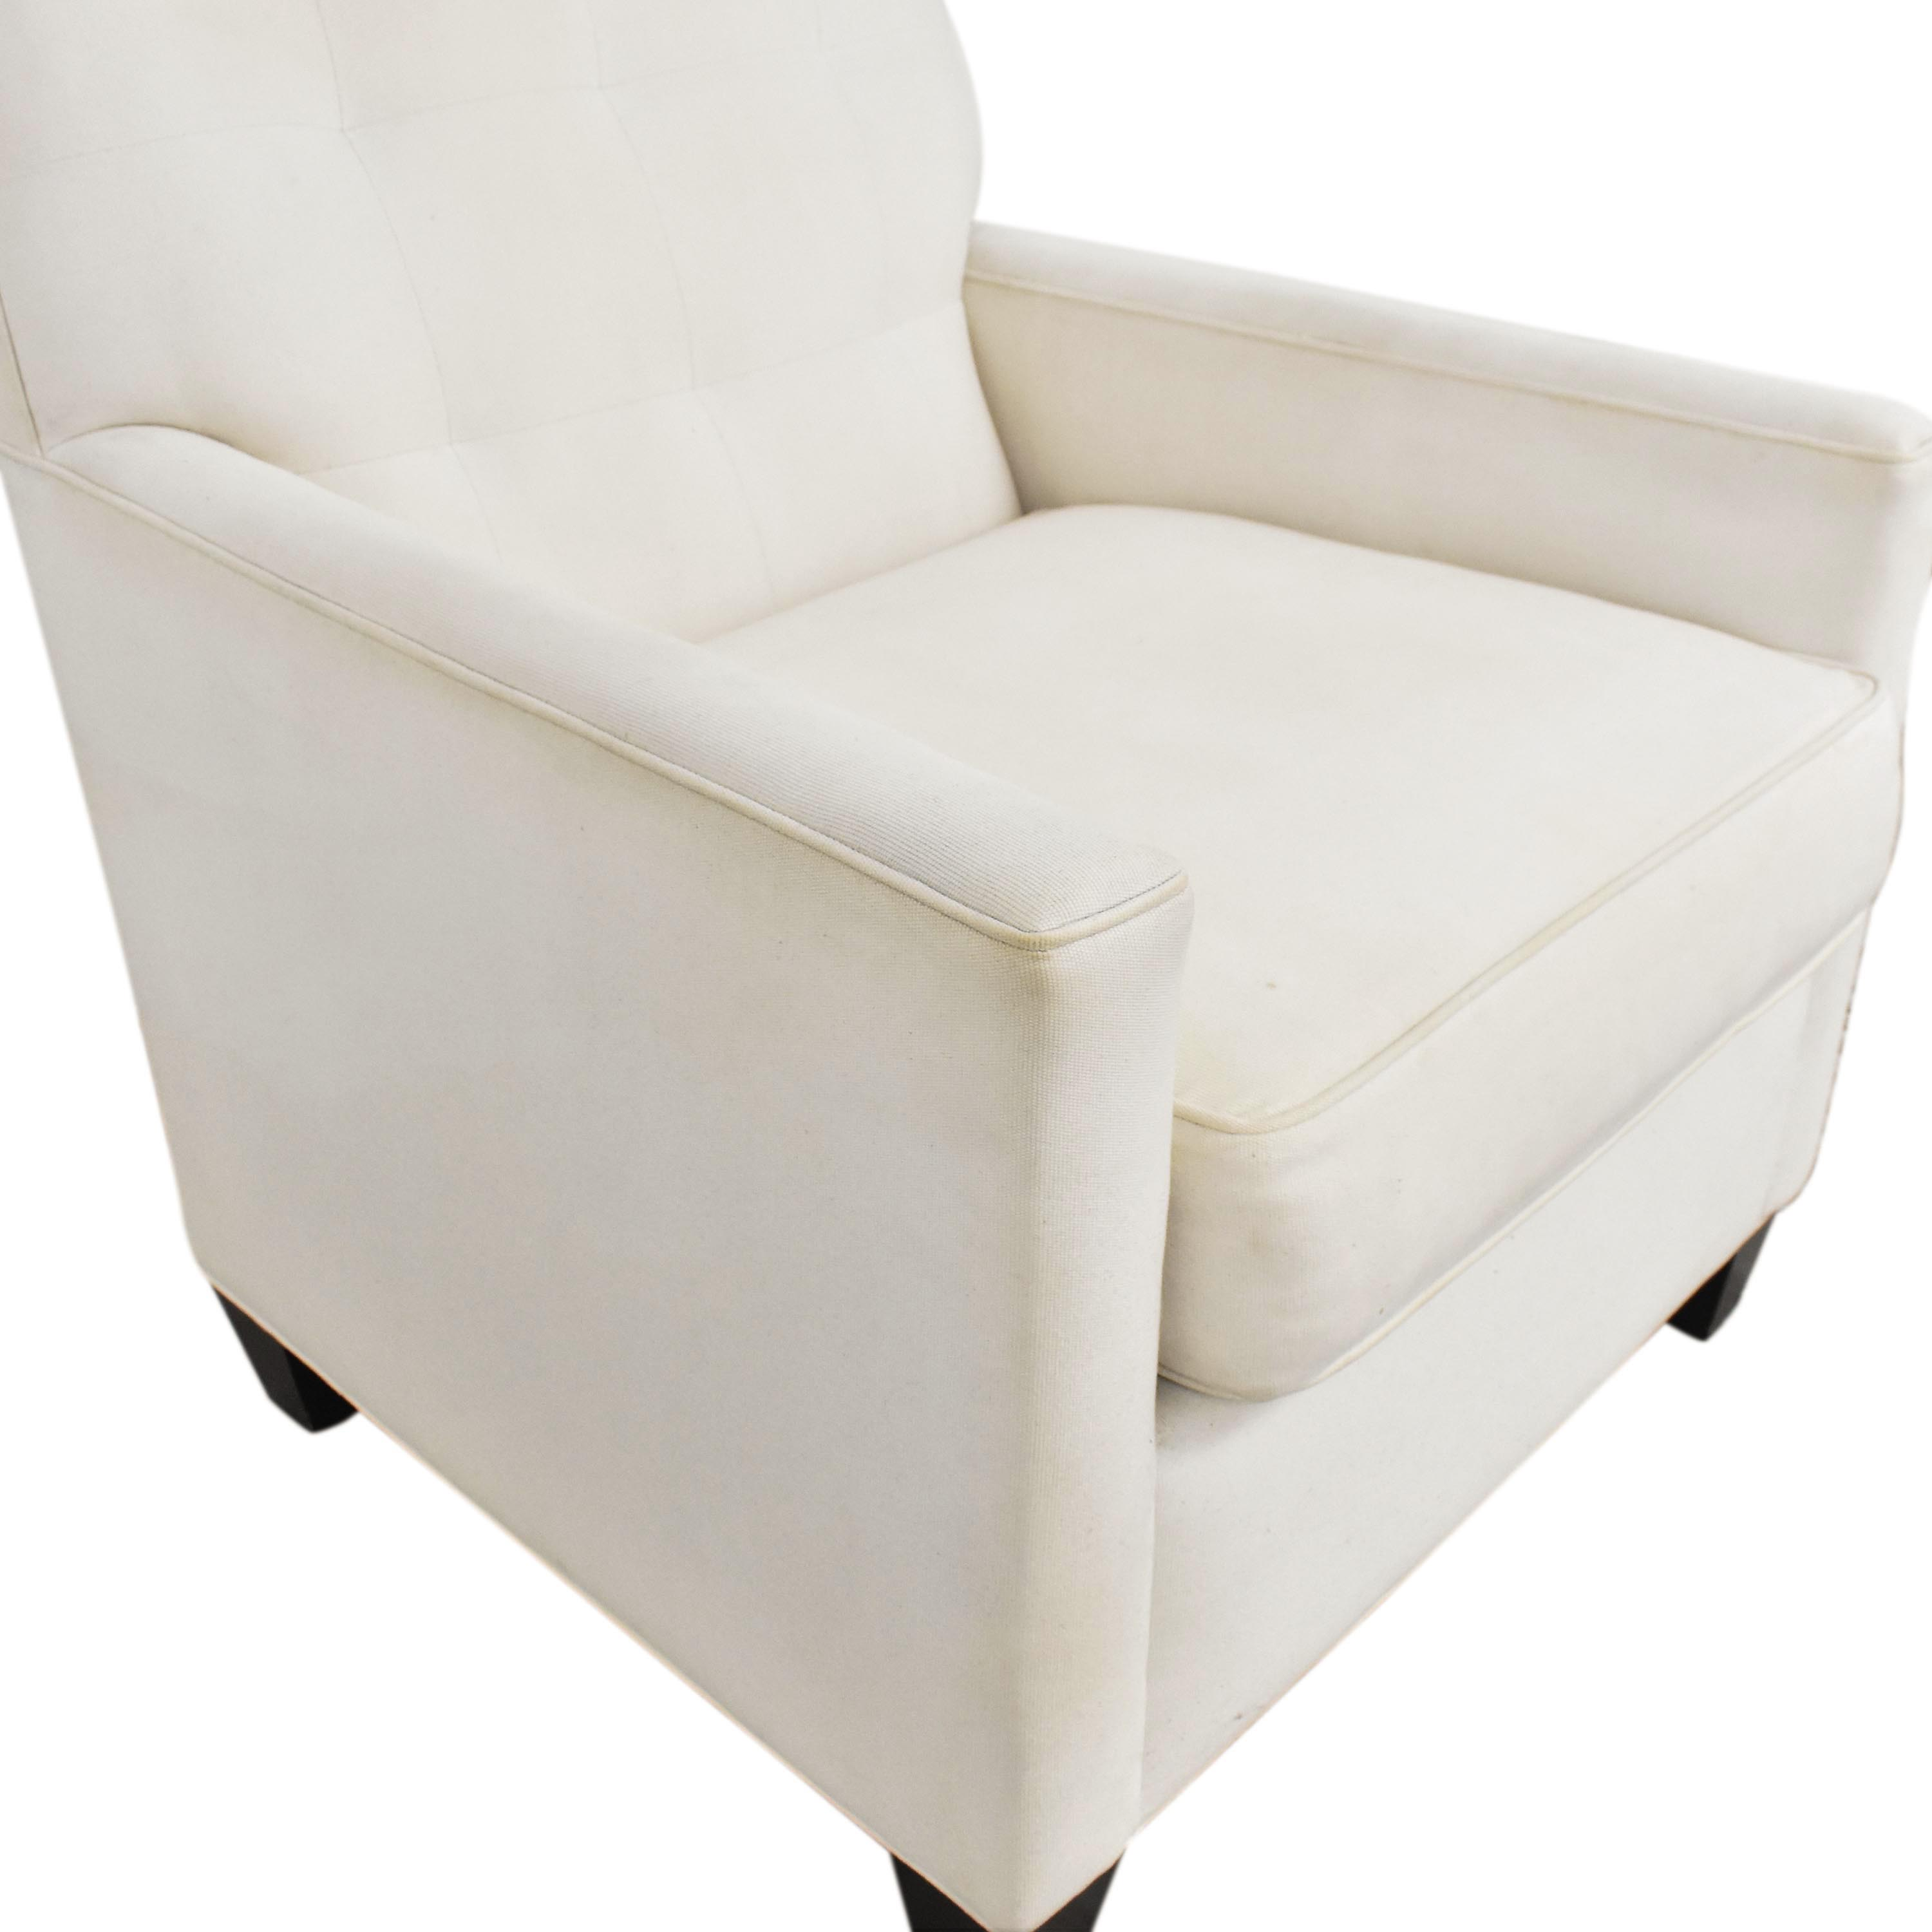 Nathan Anthony Nathan Anthony Lounge Chair discount